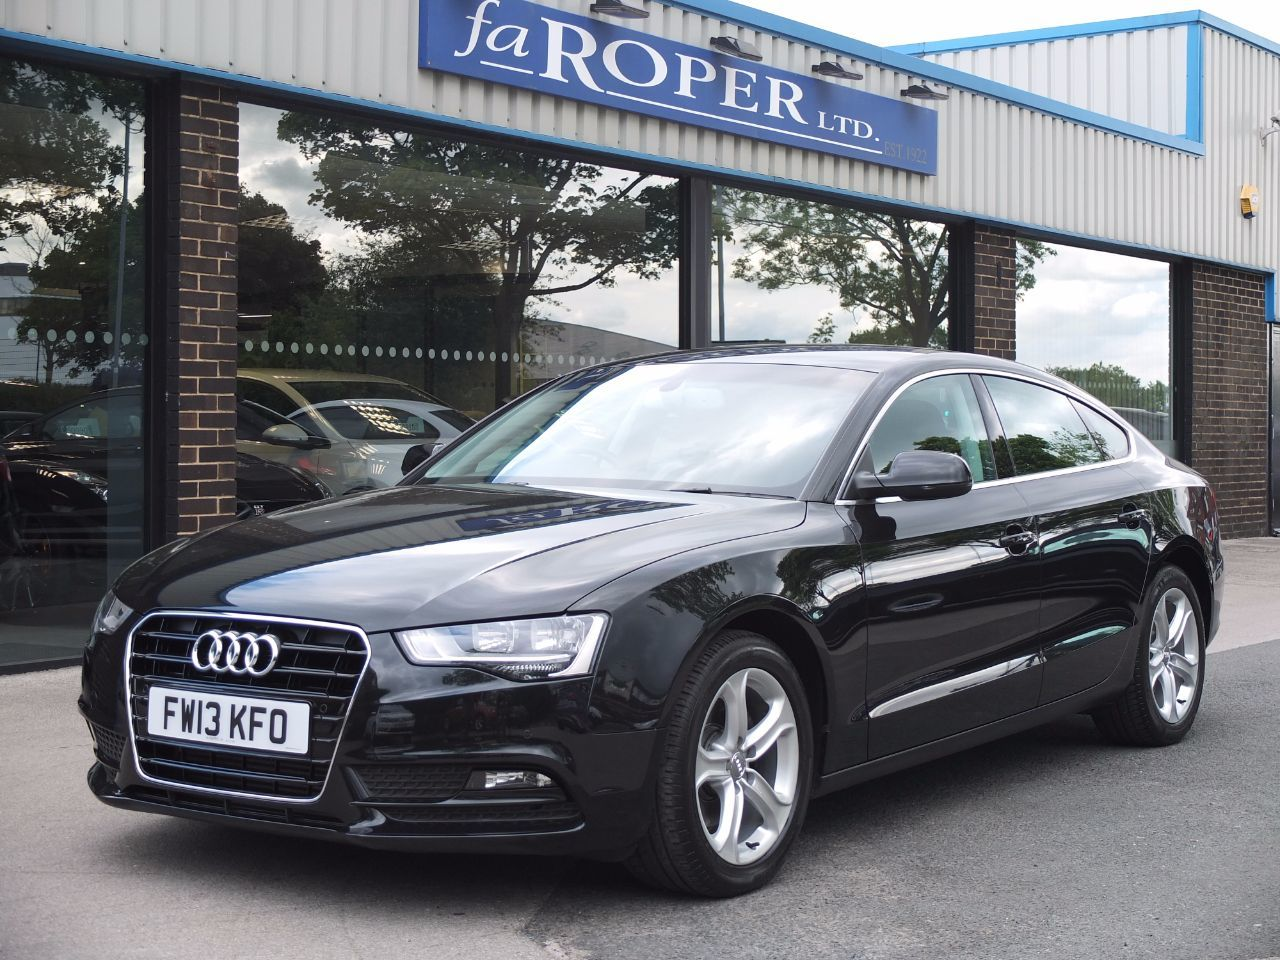 Audi A5 Sportback 2.0 TDI SE Technik 150ps Multitronic [5 Seat] Hatchback Diesel Phantom Black MetallicAudi A5 Sportback 2.0 TDI SE Technik 150ps Multitronic [5 Seat] Hatchback Diesel Phantom Black Metallic at fa Roper Ltd Bradford